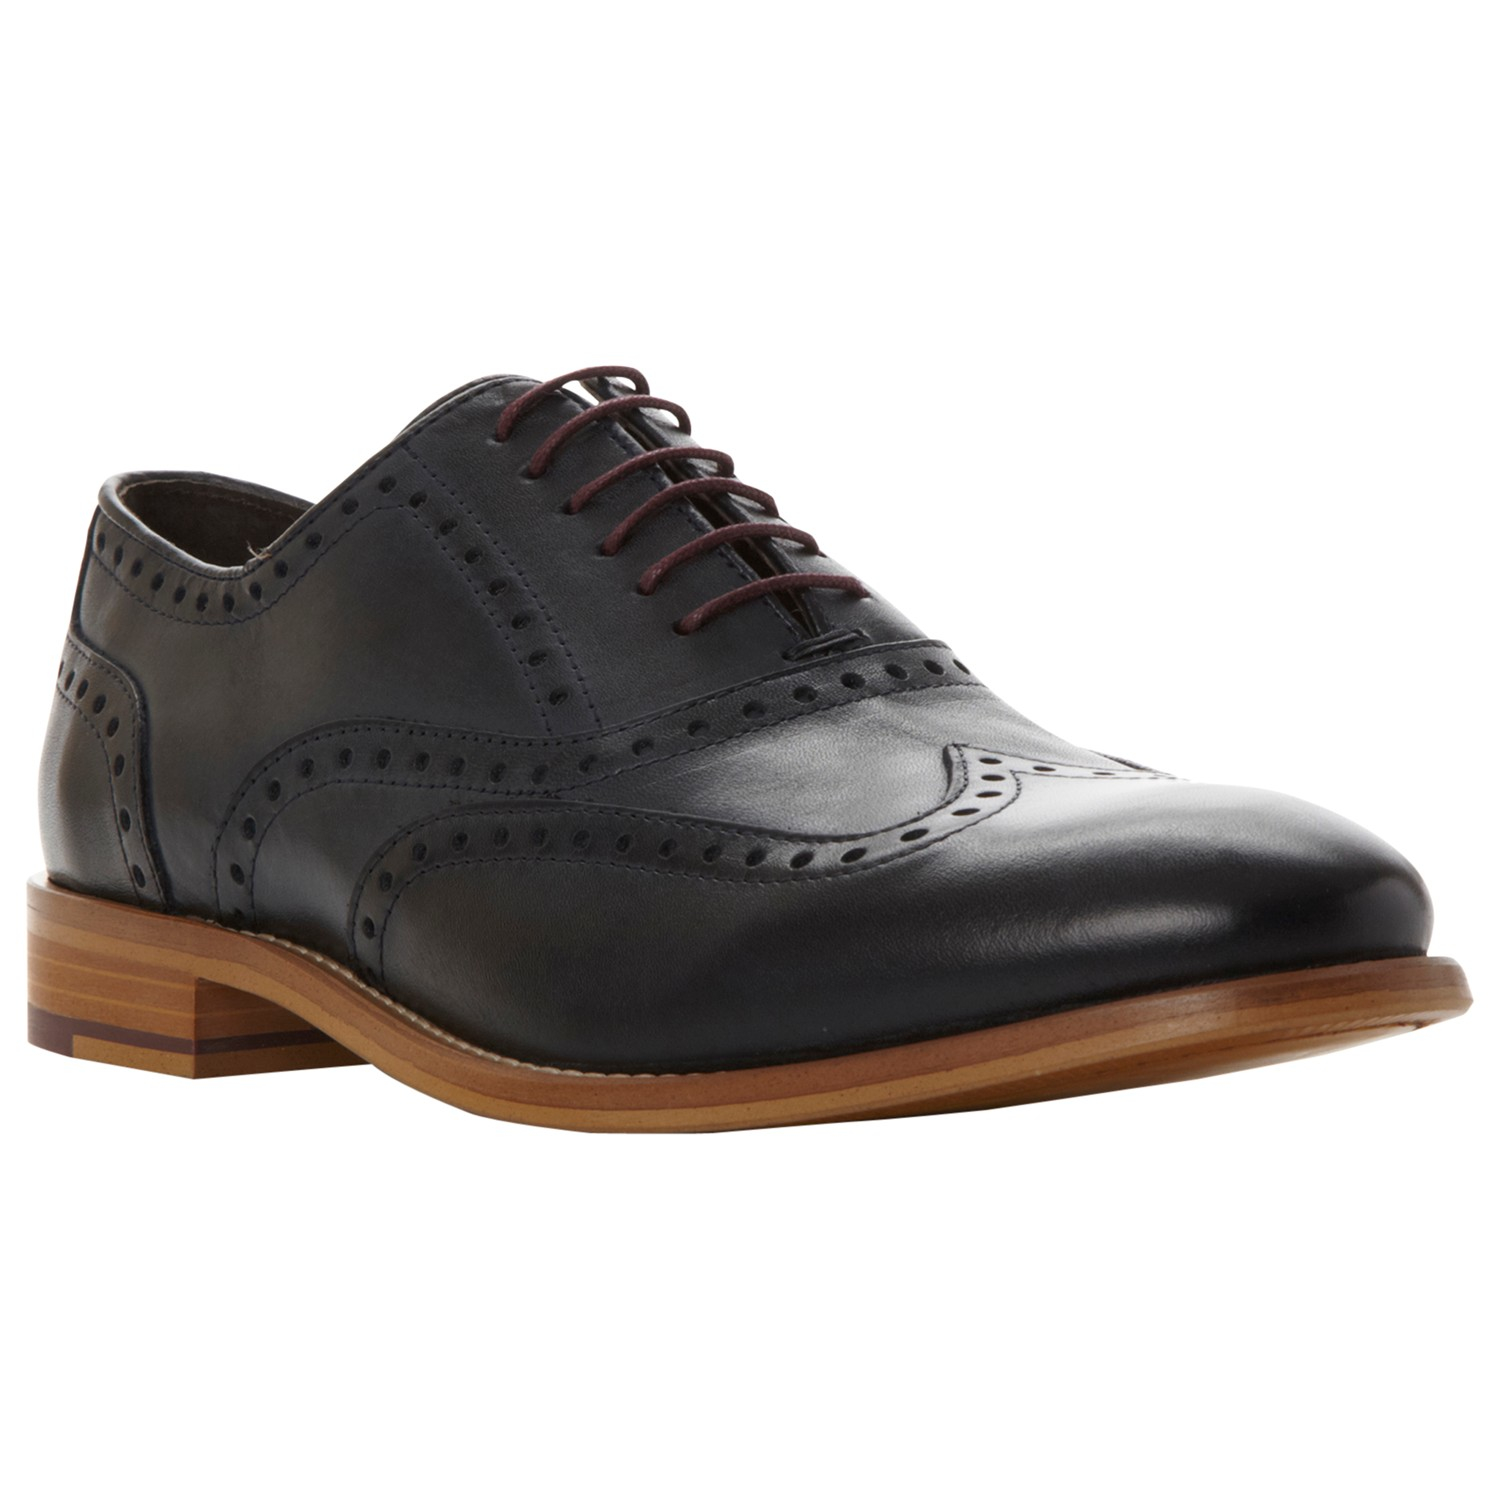 Dune Bettalion Lace-up Brogues in Black for Men